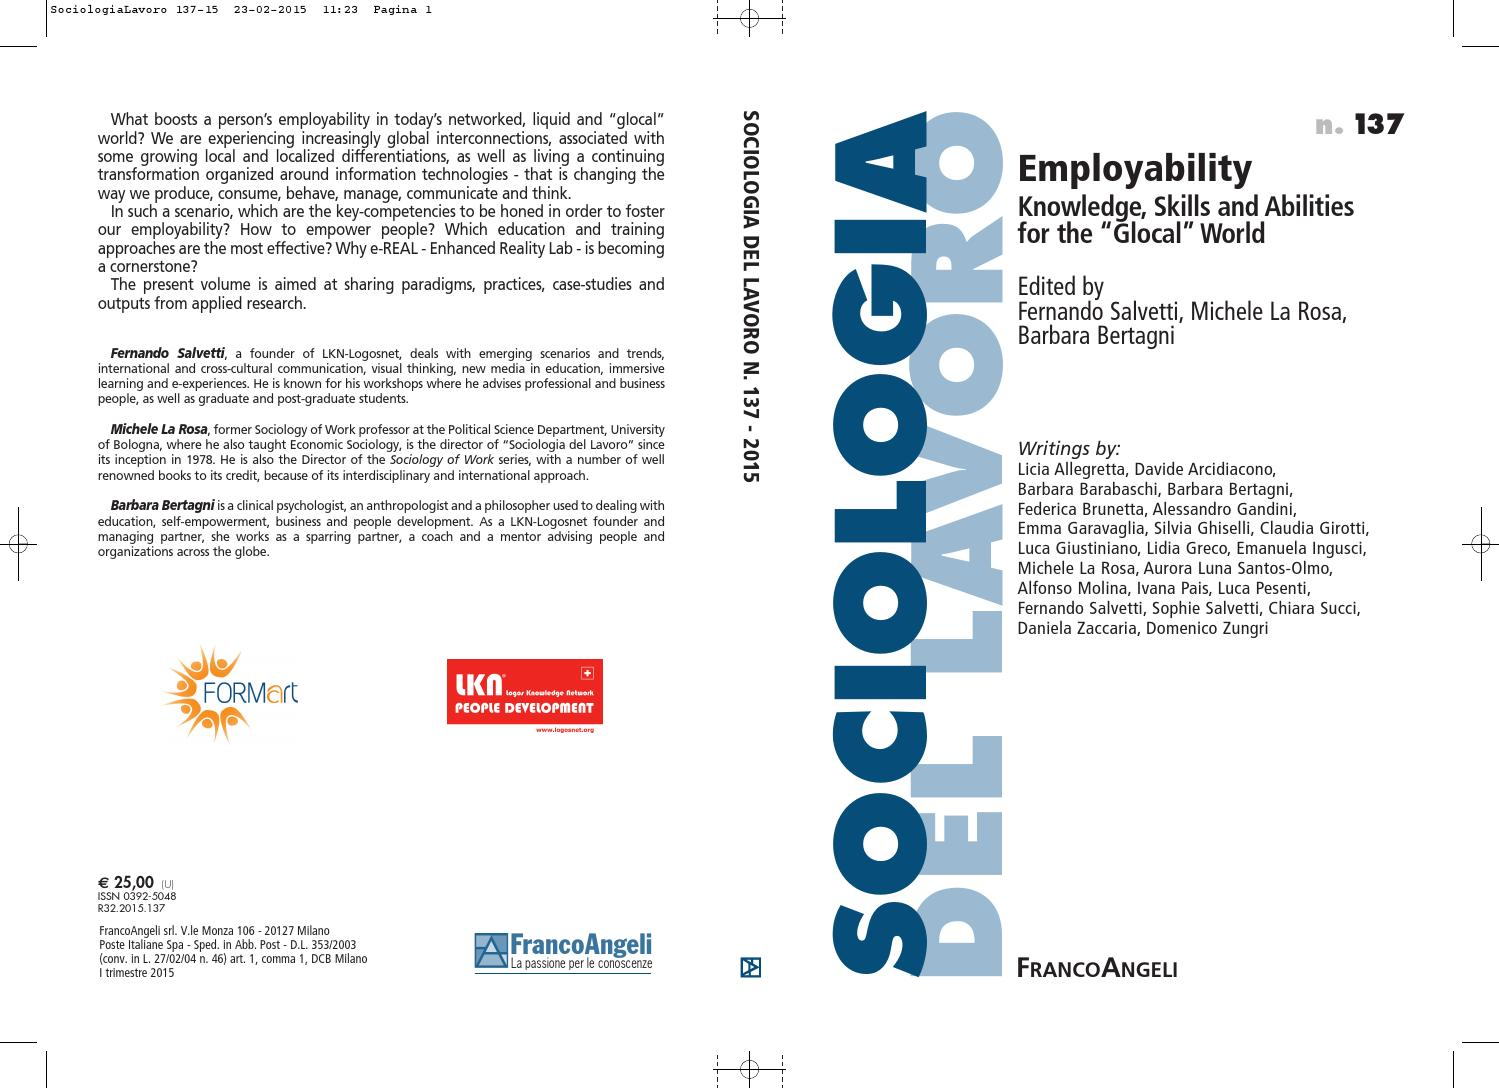 employability knowledge skills and abilities for the glocal knowledge skills and abilities for the glocal world by logosnet org issuu